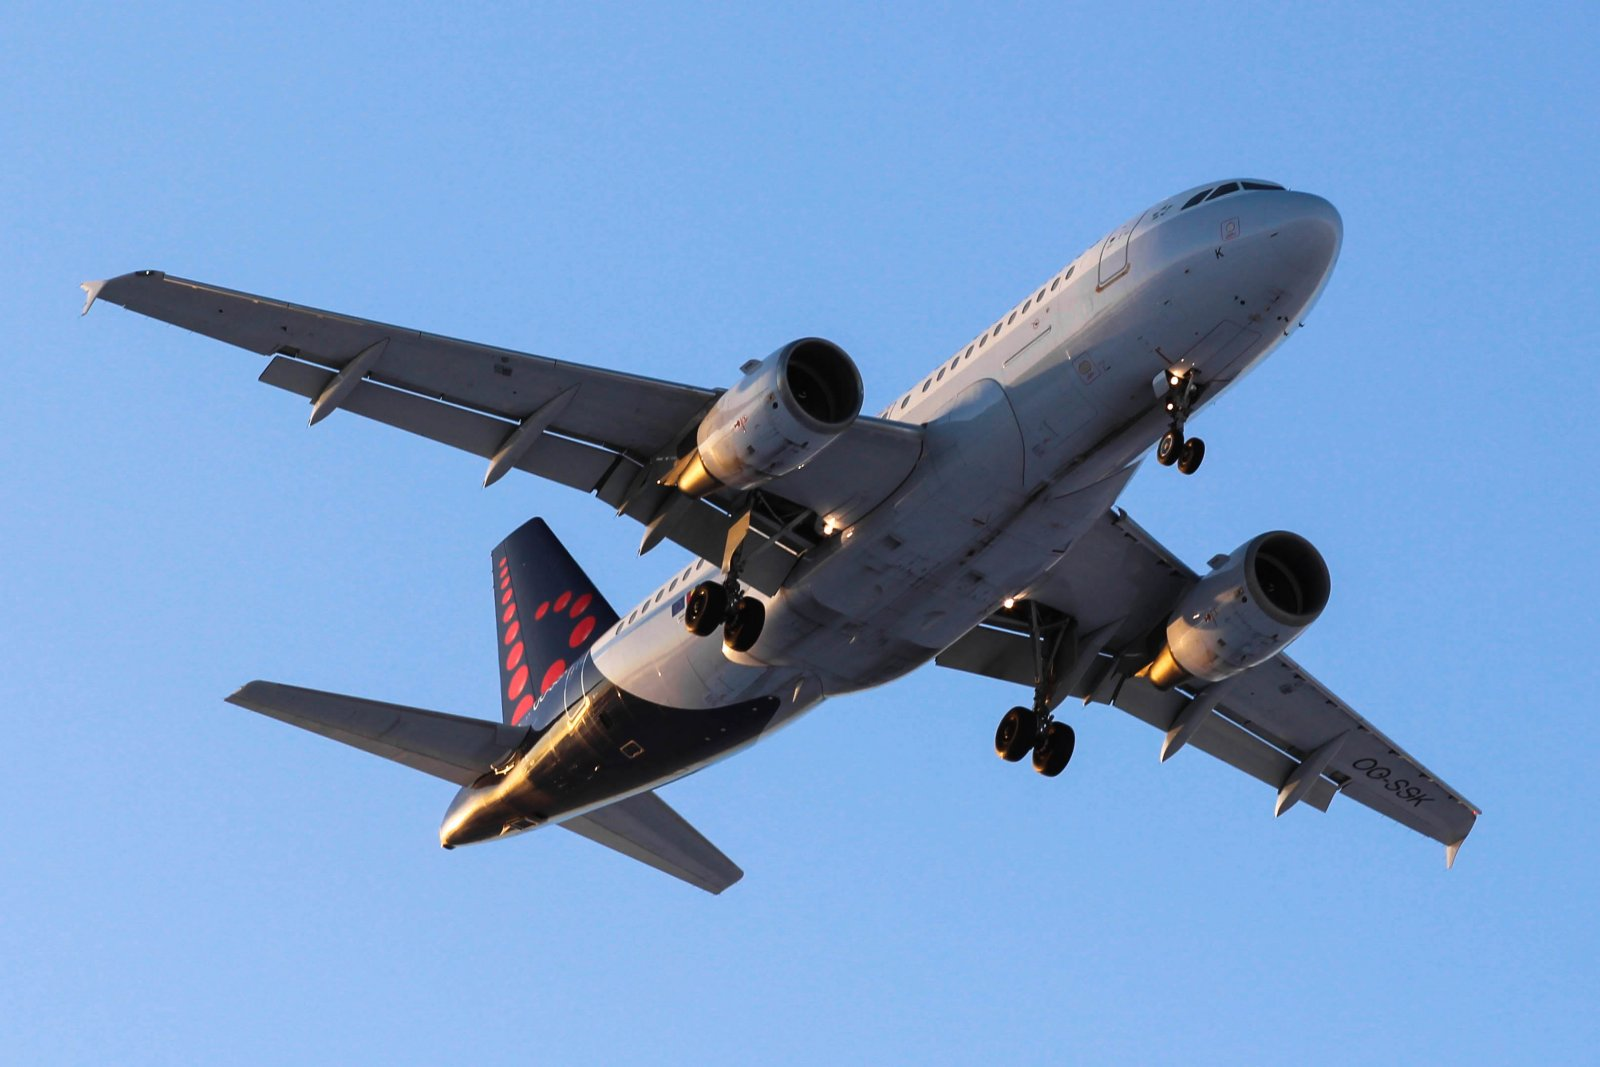 OO-SSK Airbus A319-112